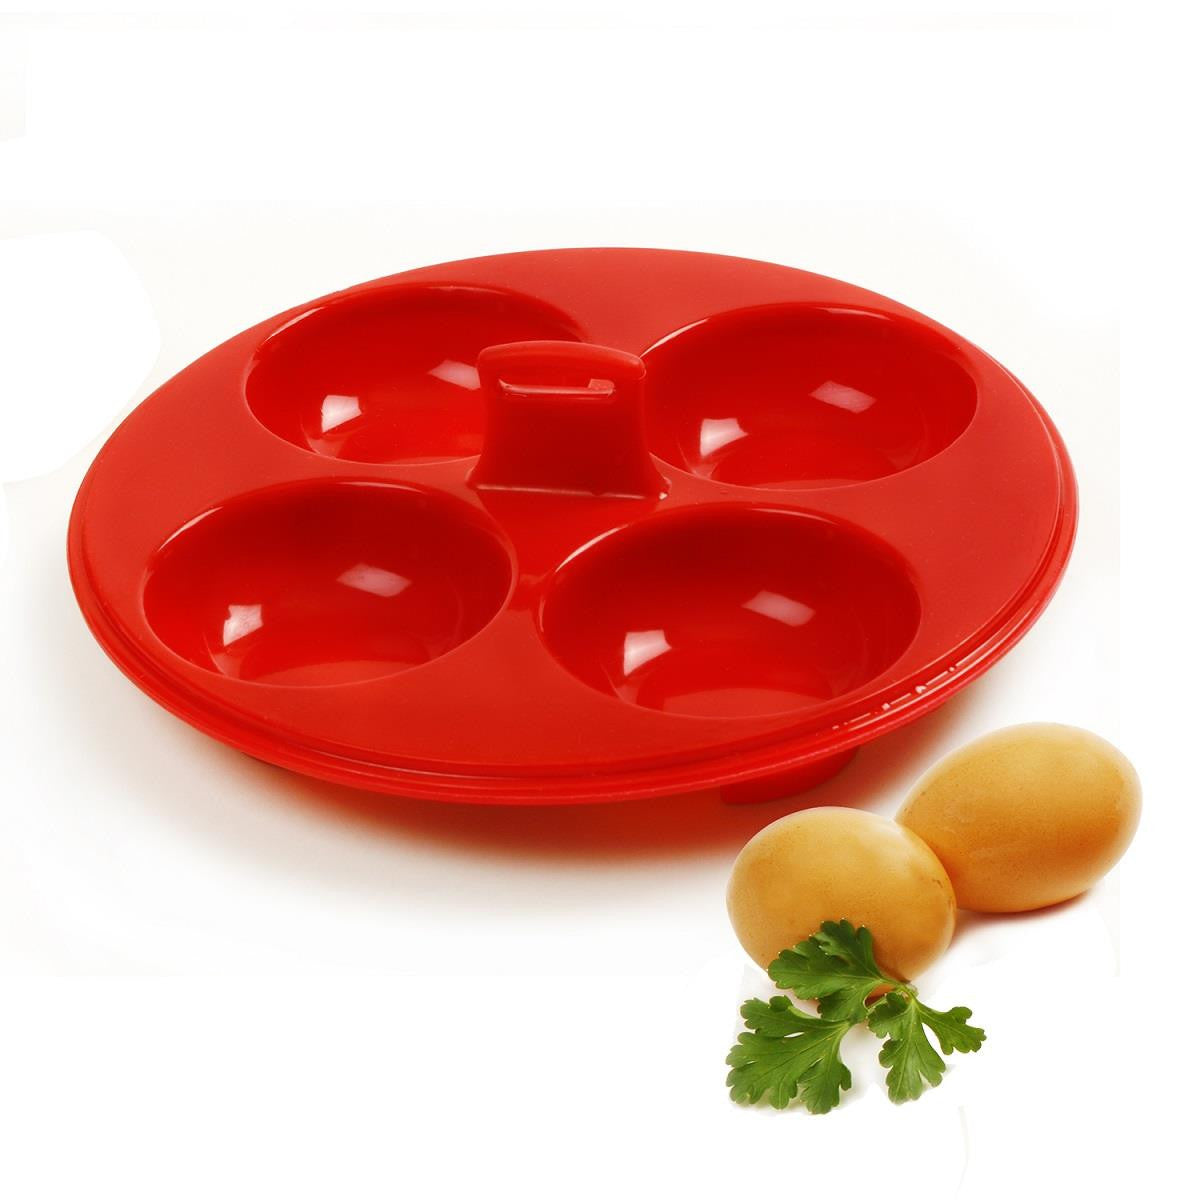 Norpro red Silicone 4 Egg Egg Poacher